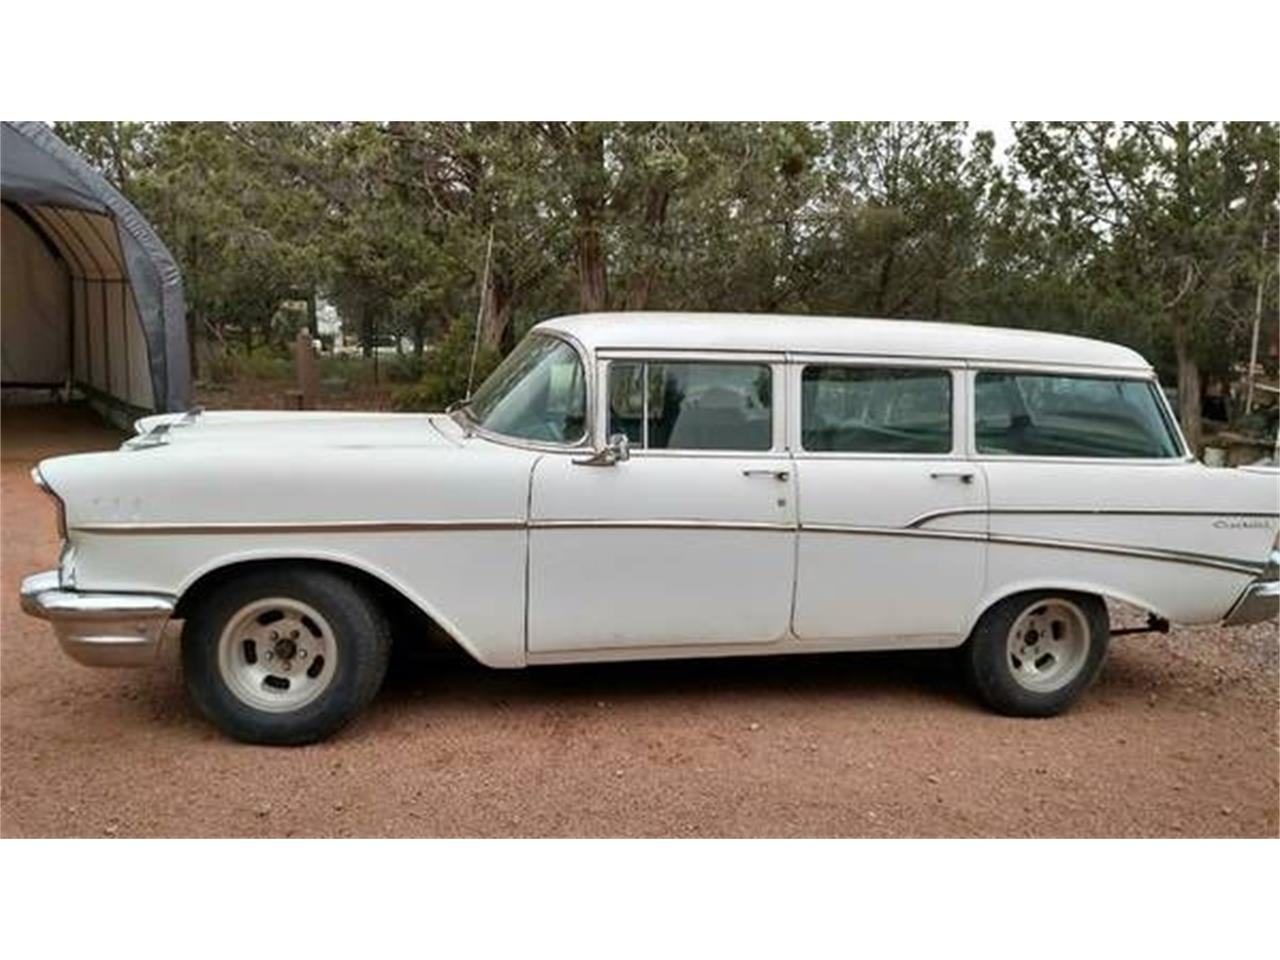 1957 Chevrolet Bel Air For Sale Cc 1117020 Chevy Station Wagon Large Picture Of 57 Nxwc